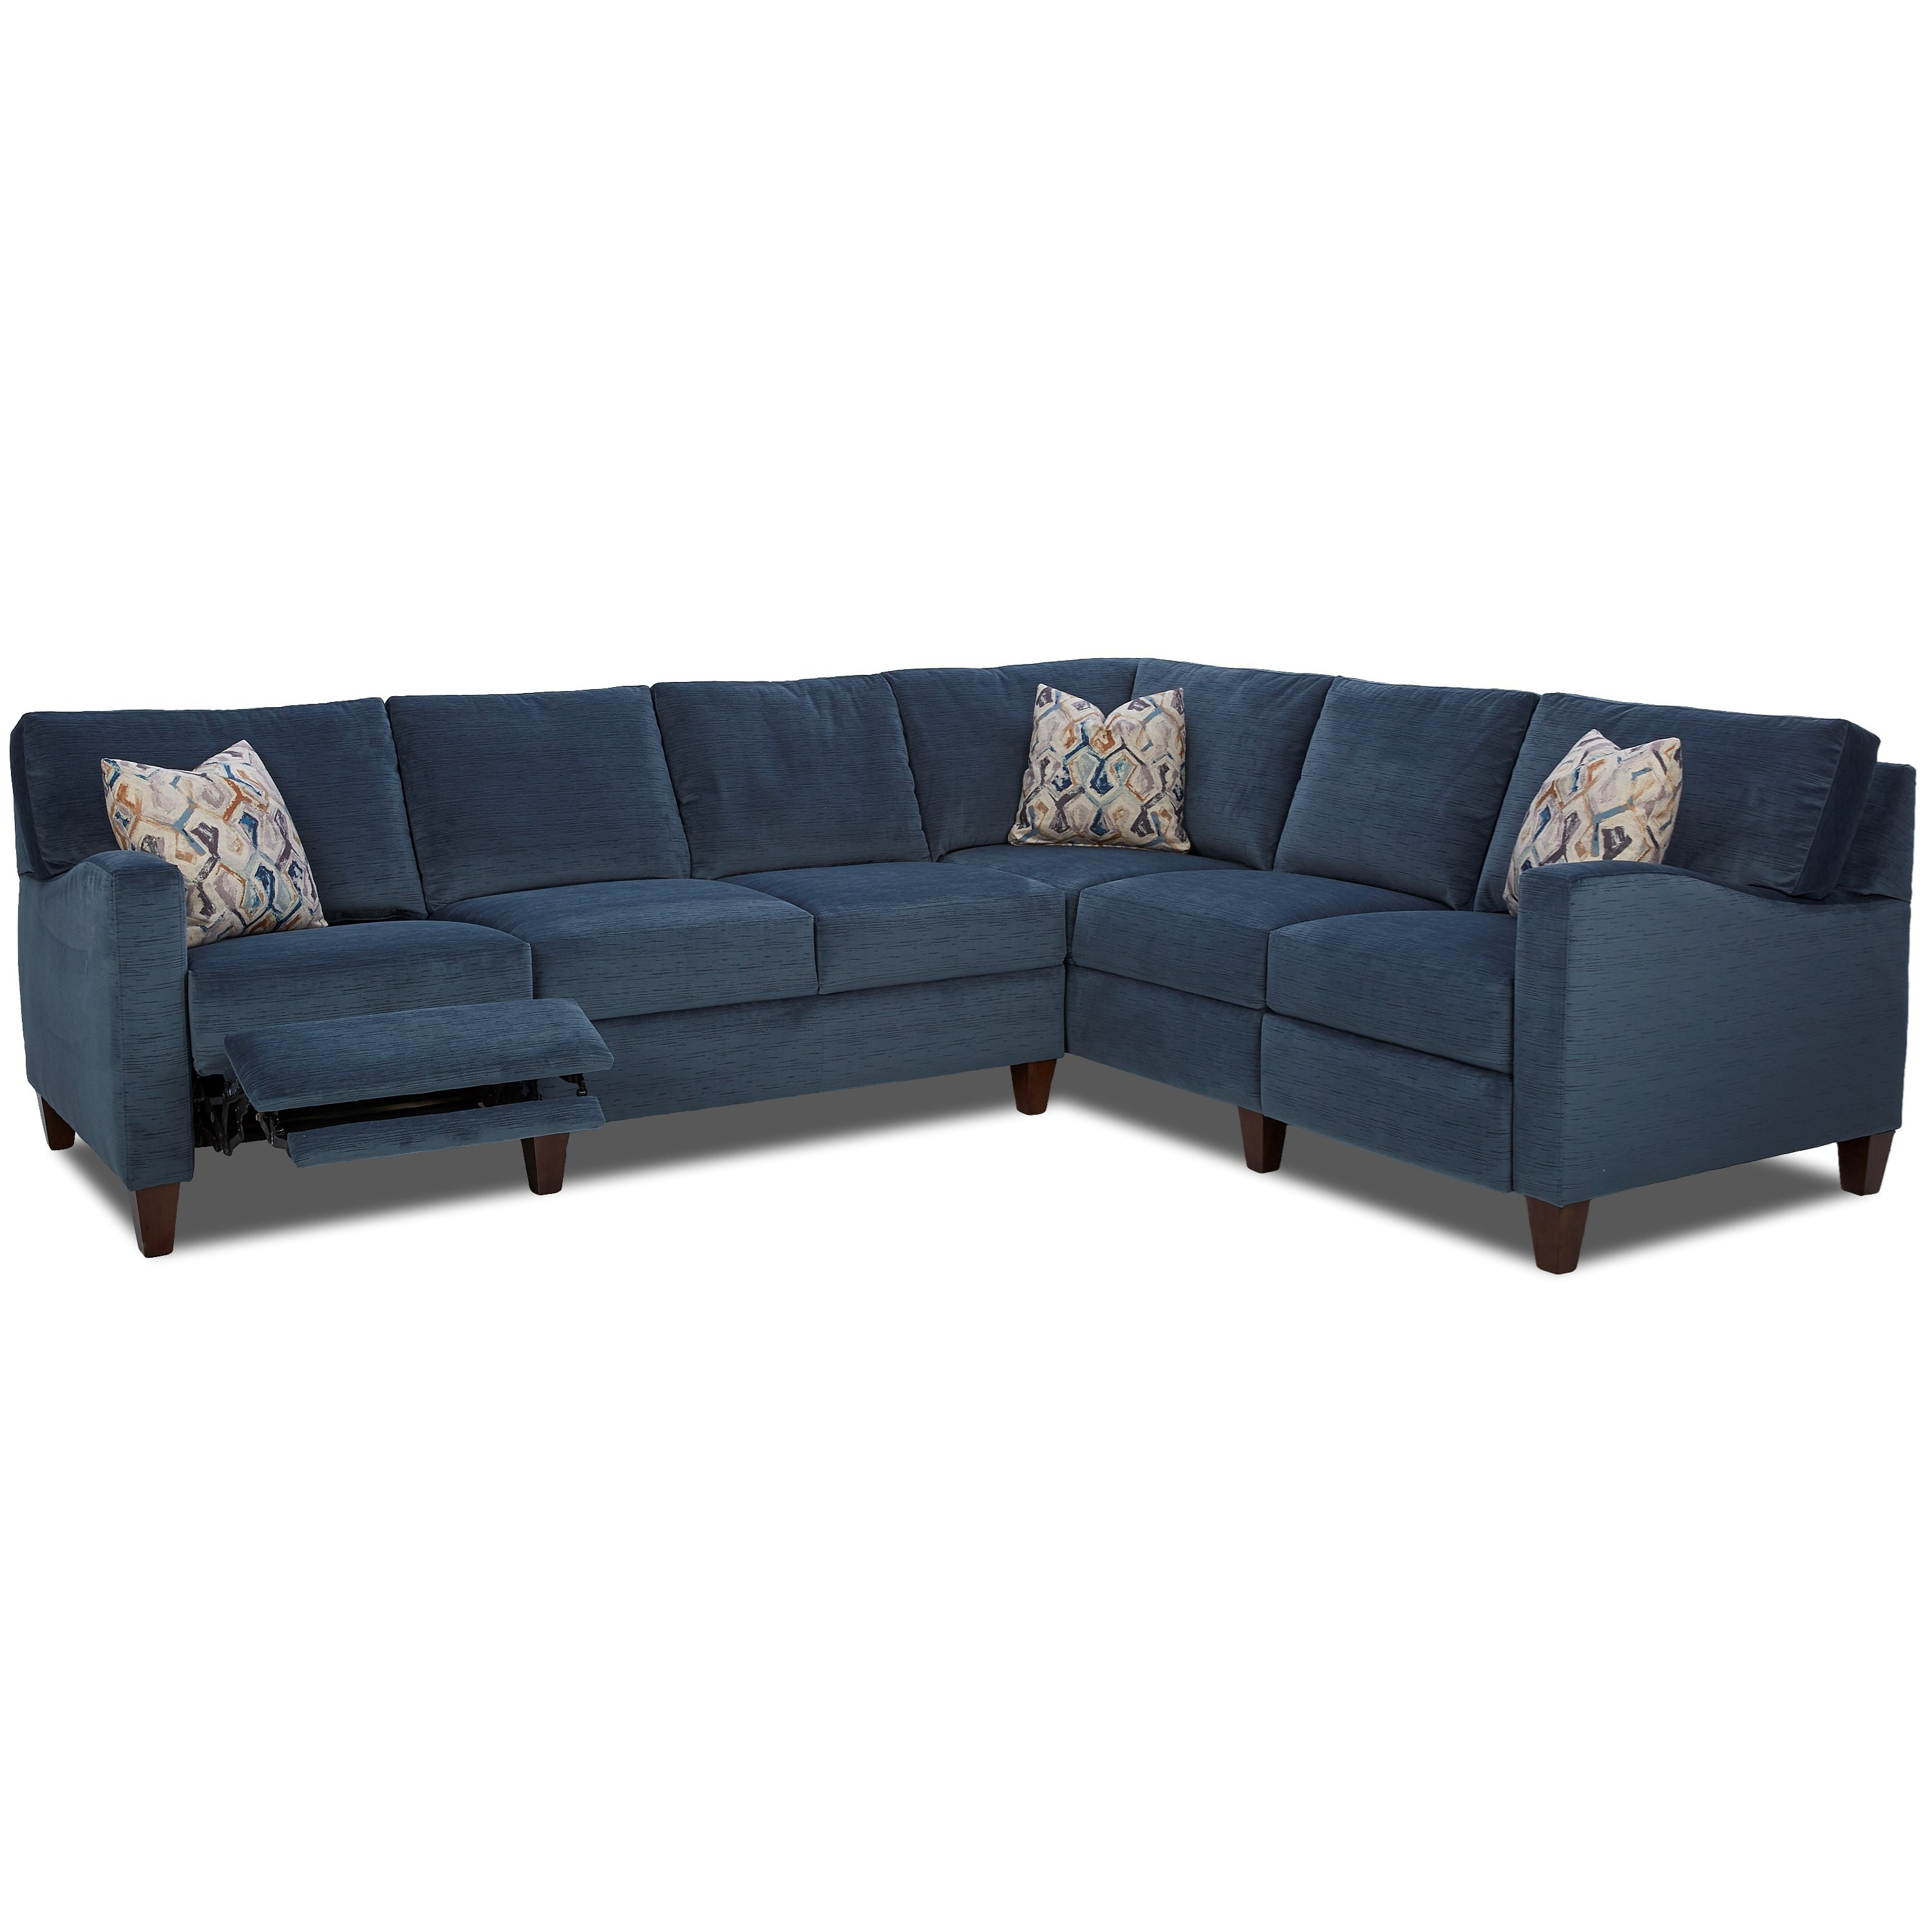 Klaussner Colleen Hybrid Reclining Sectional with RAF